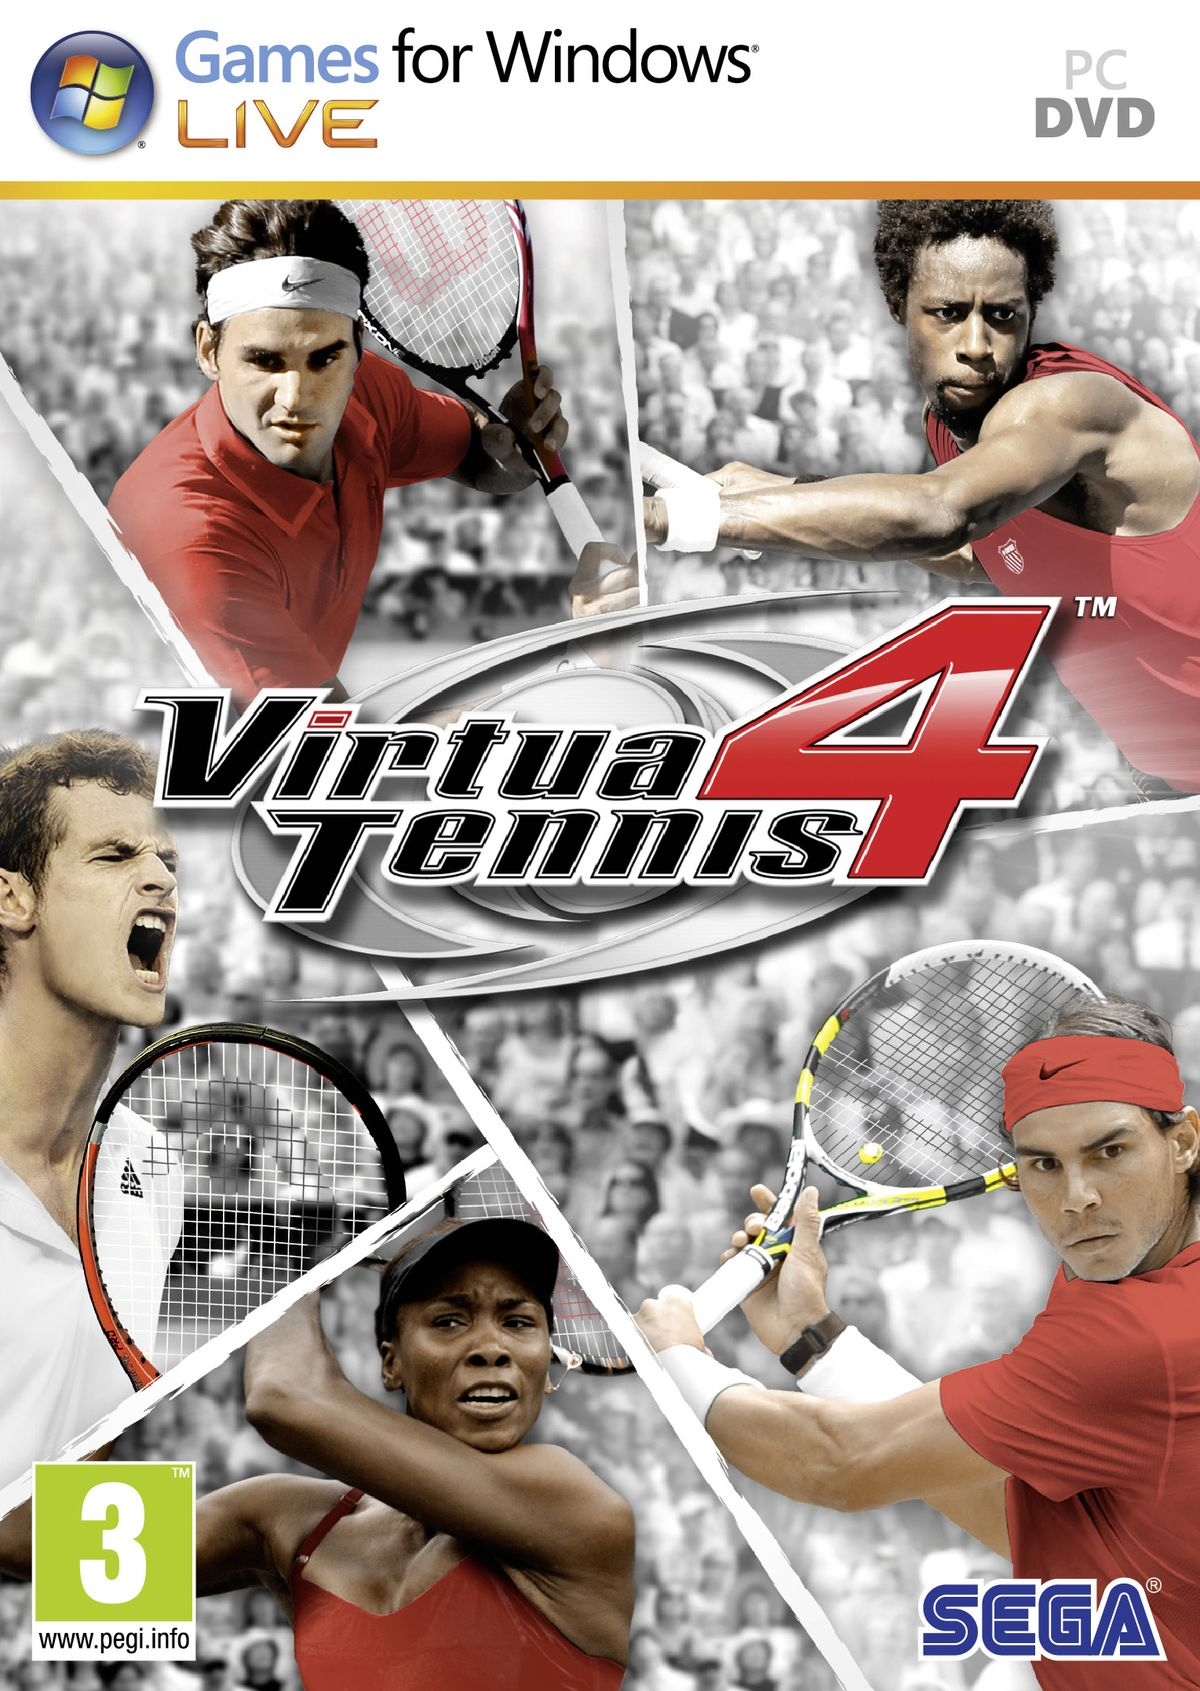 http://download.gameblog.fr/images/jeux/8444/VirtuaTennis4_PC_Jaquette_001.jpg